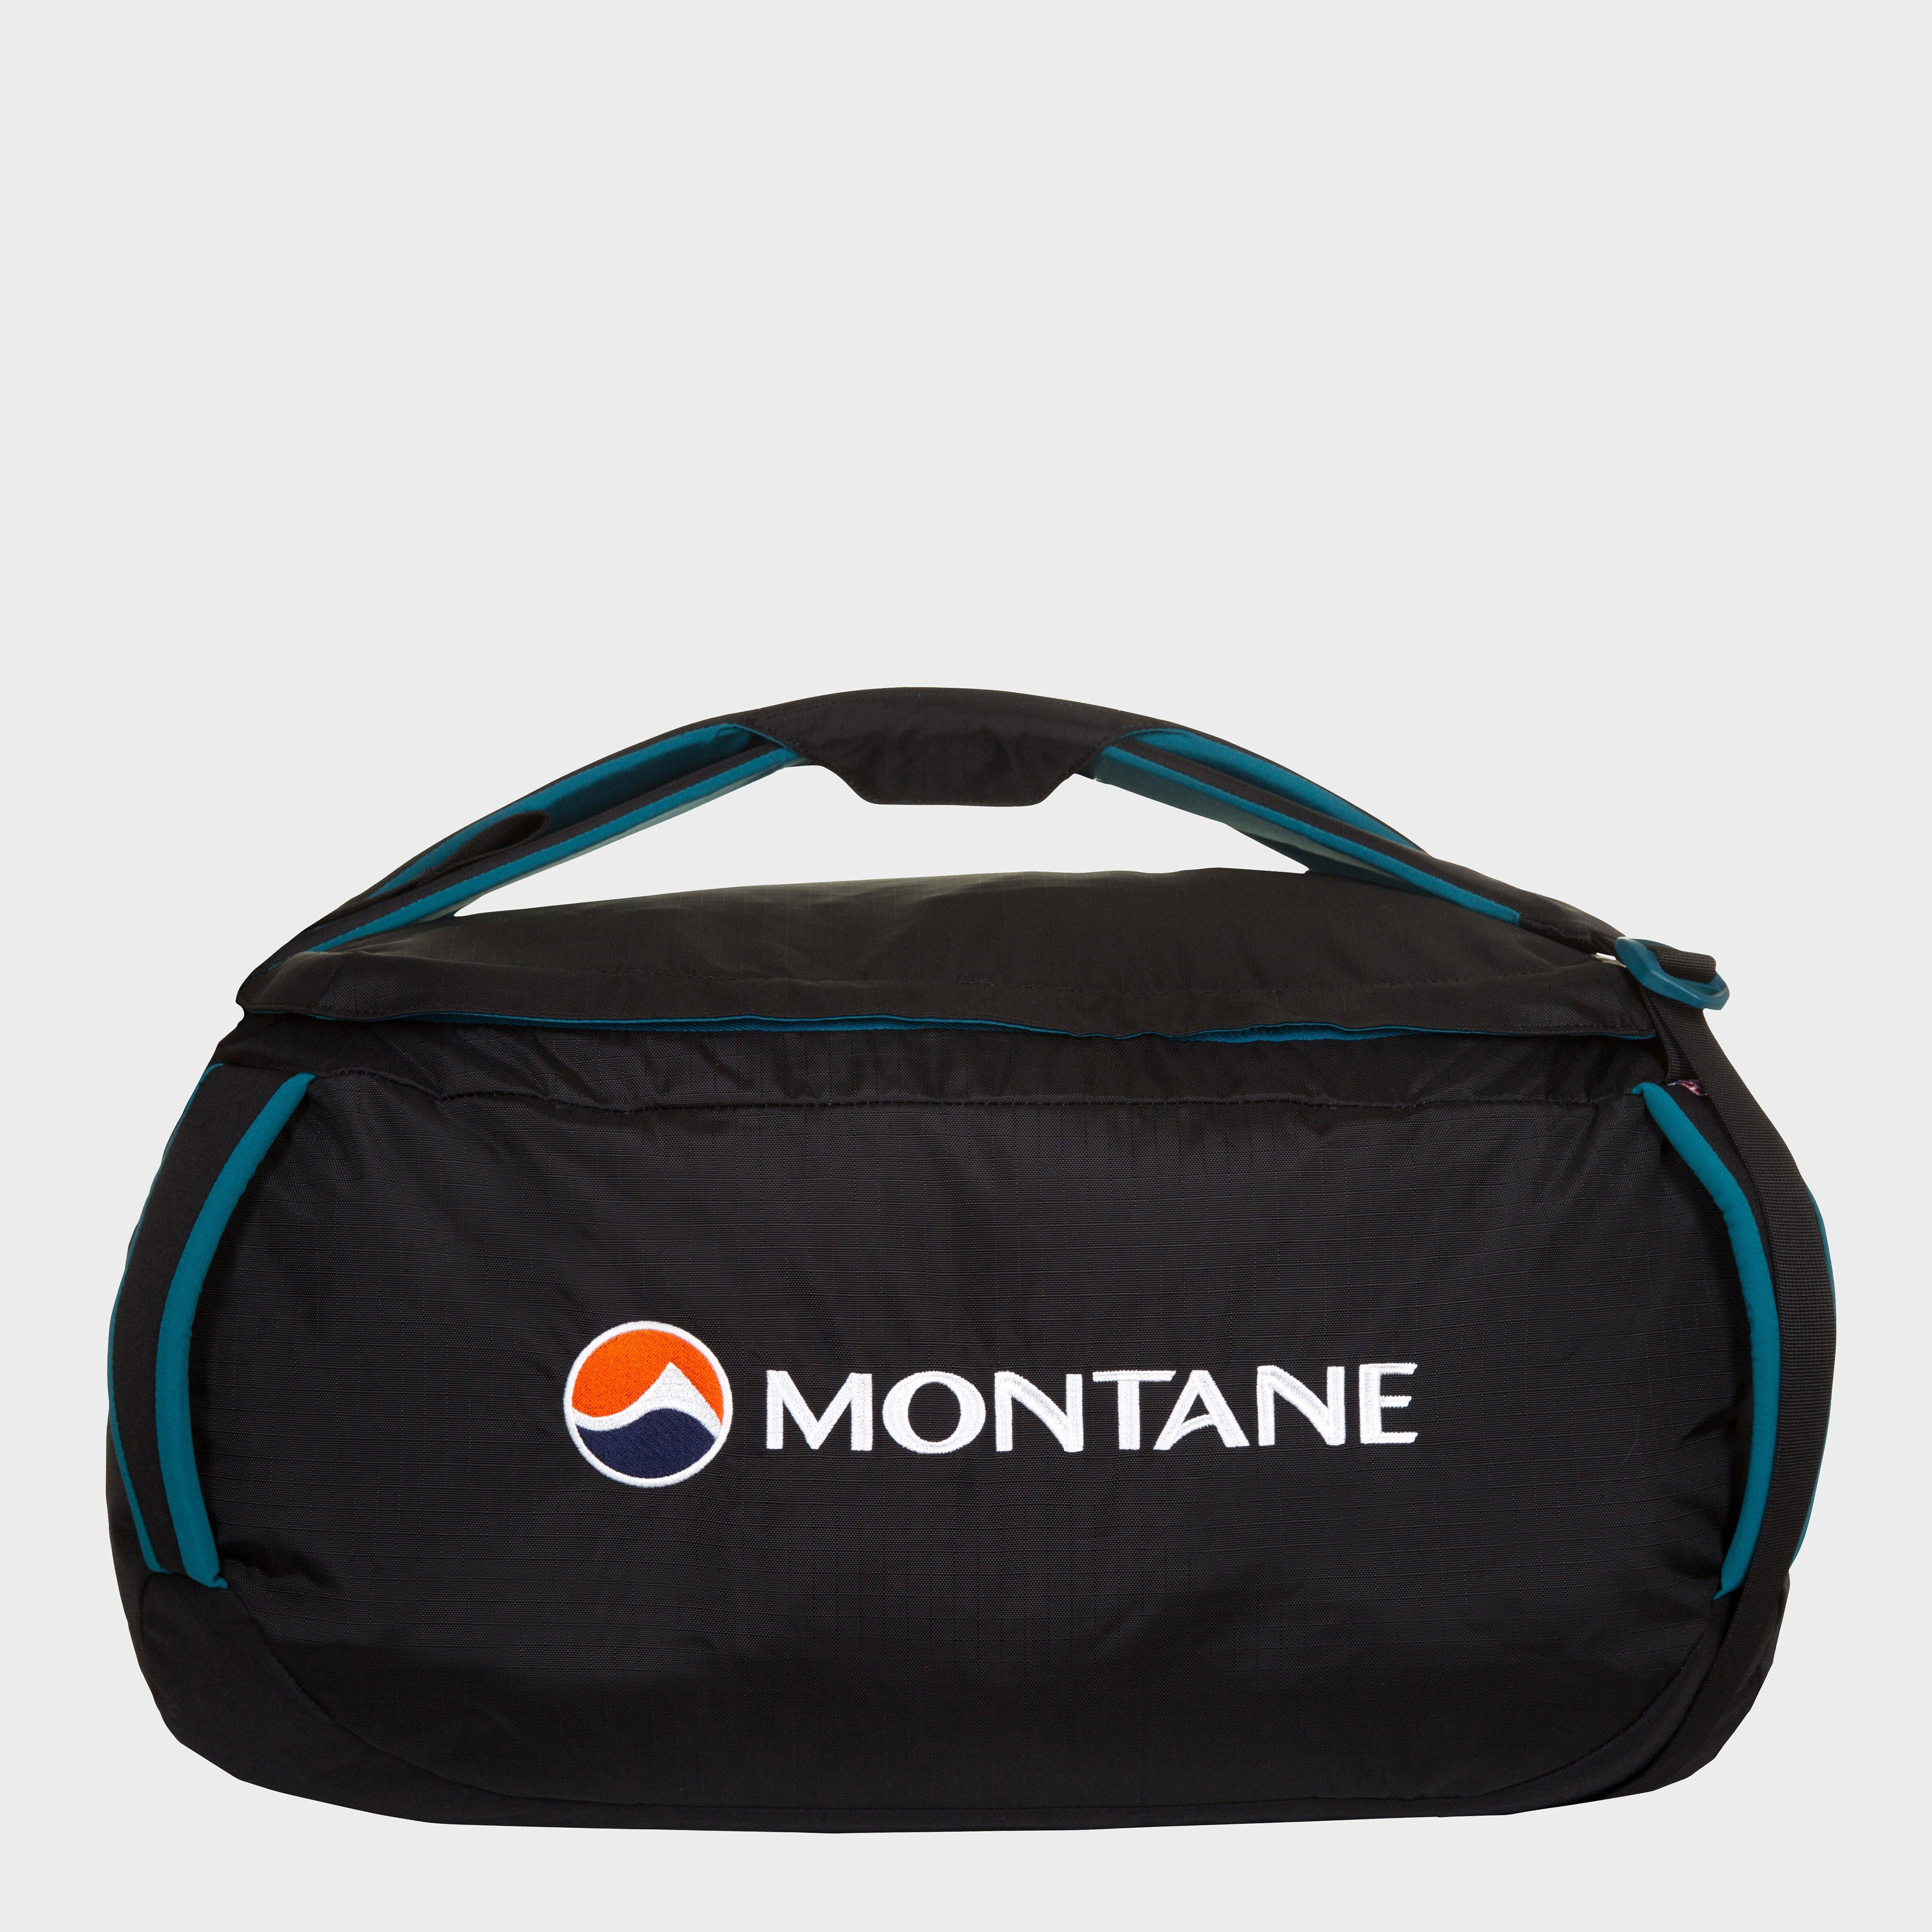 Montane Transition 40L Holdall 92c8046fa3f50